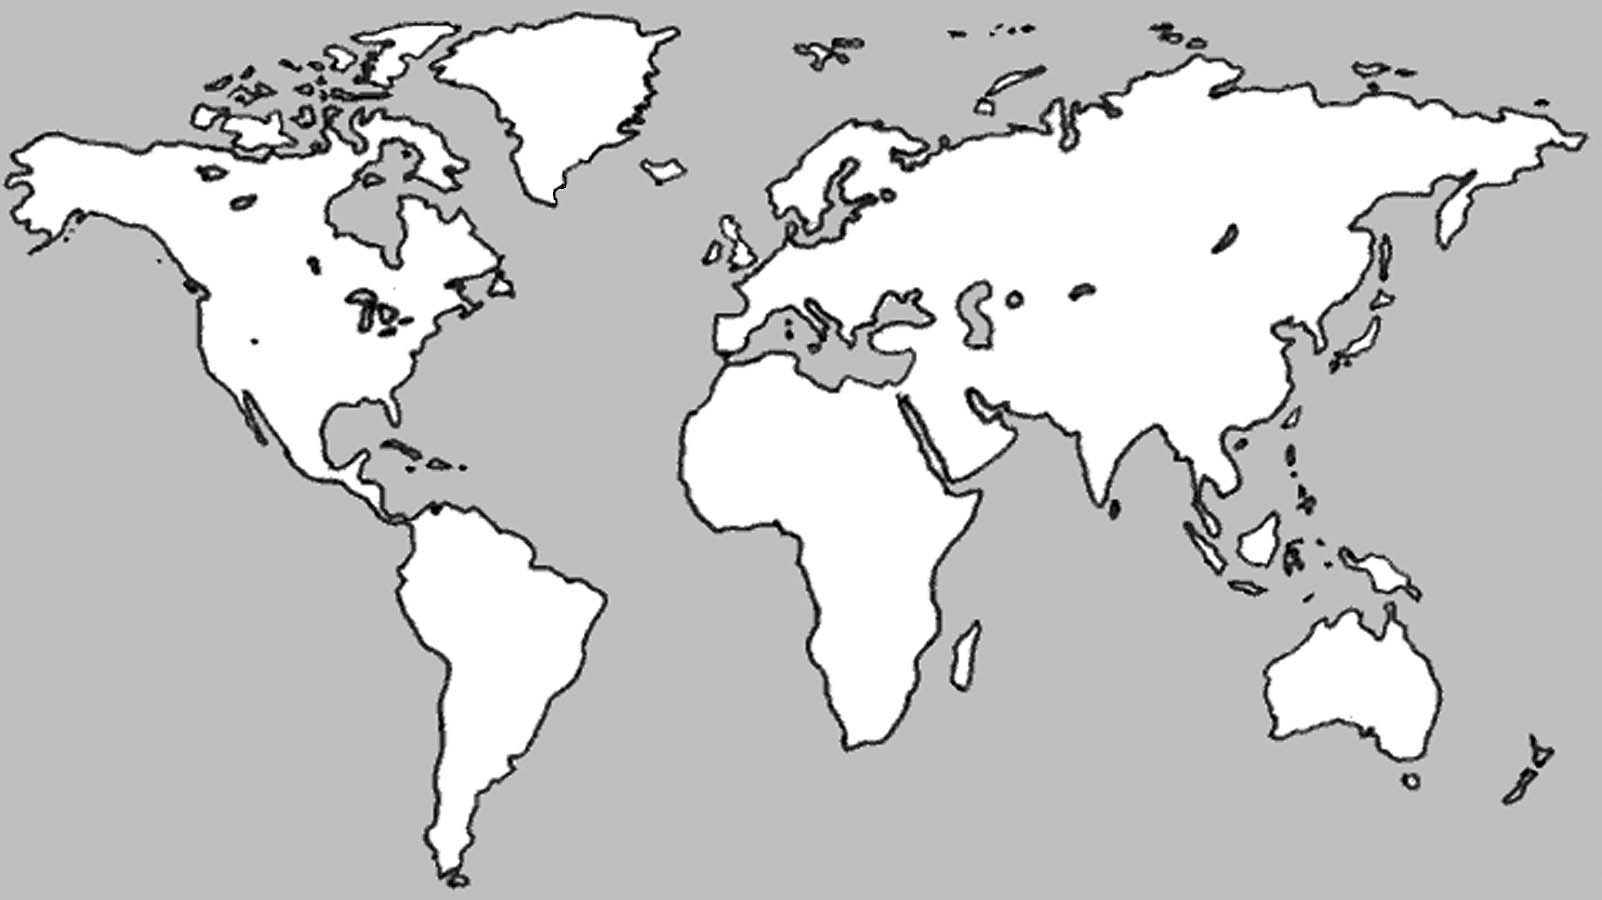 Blank world outline map